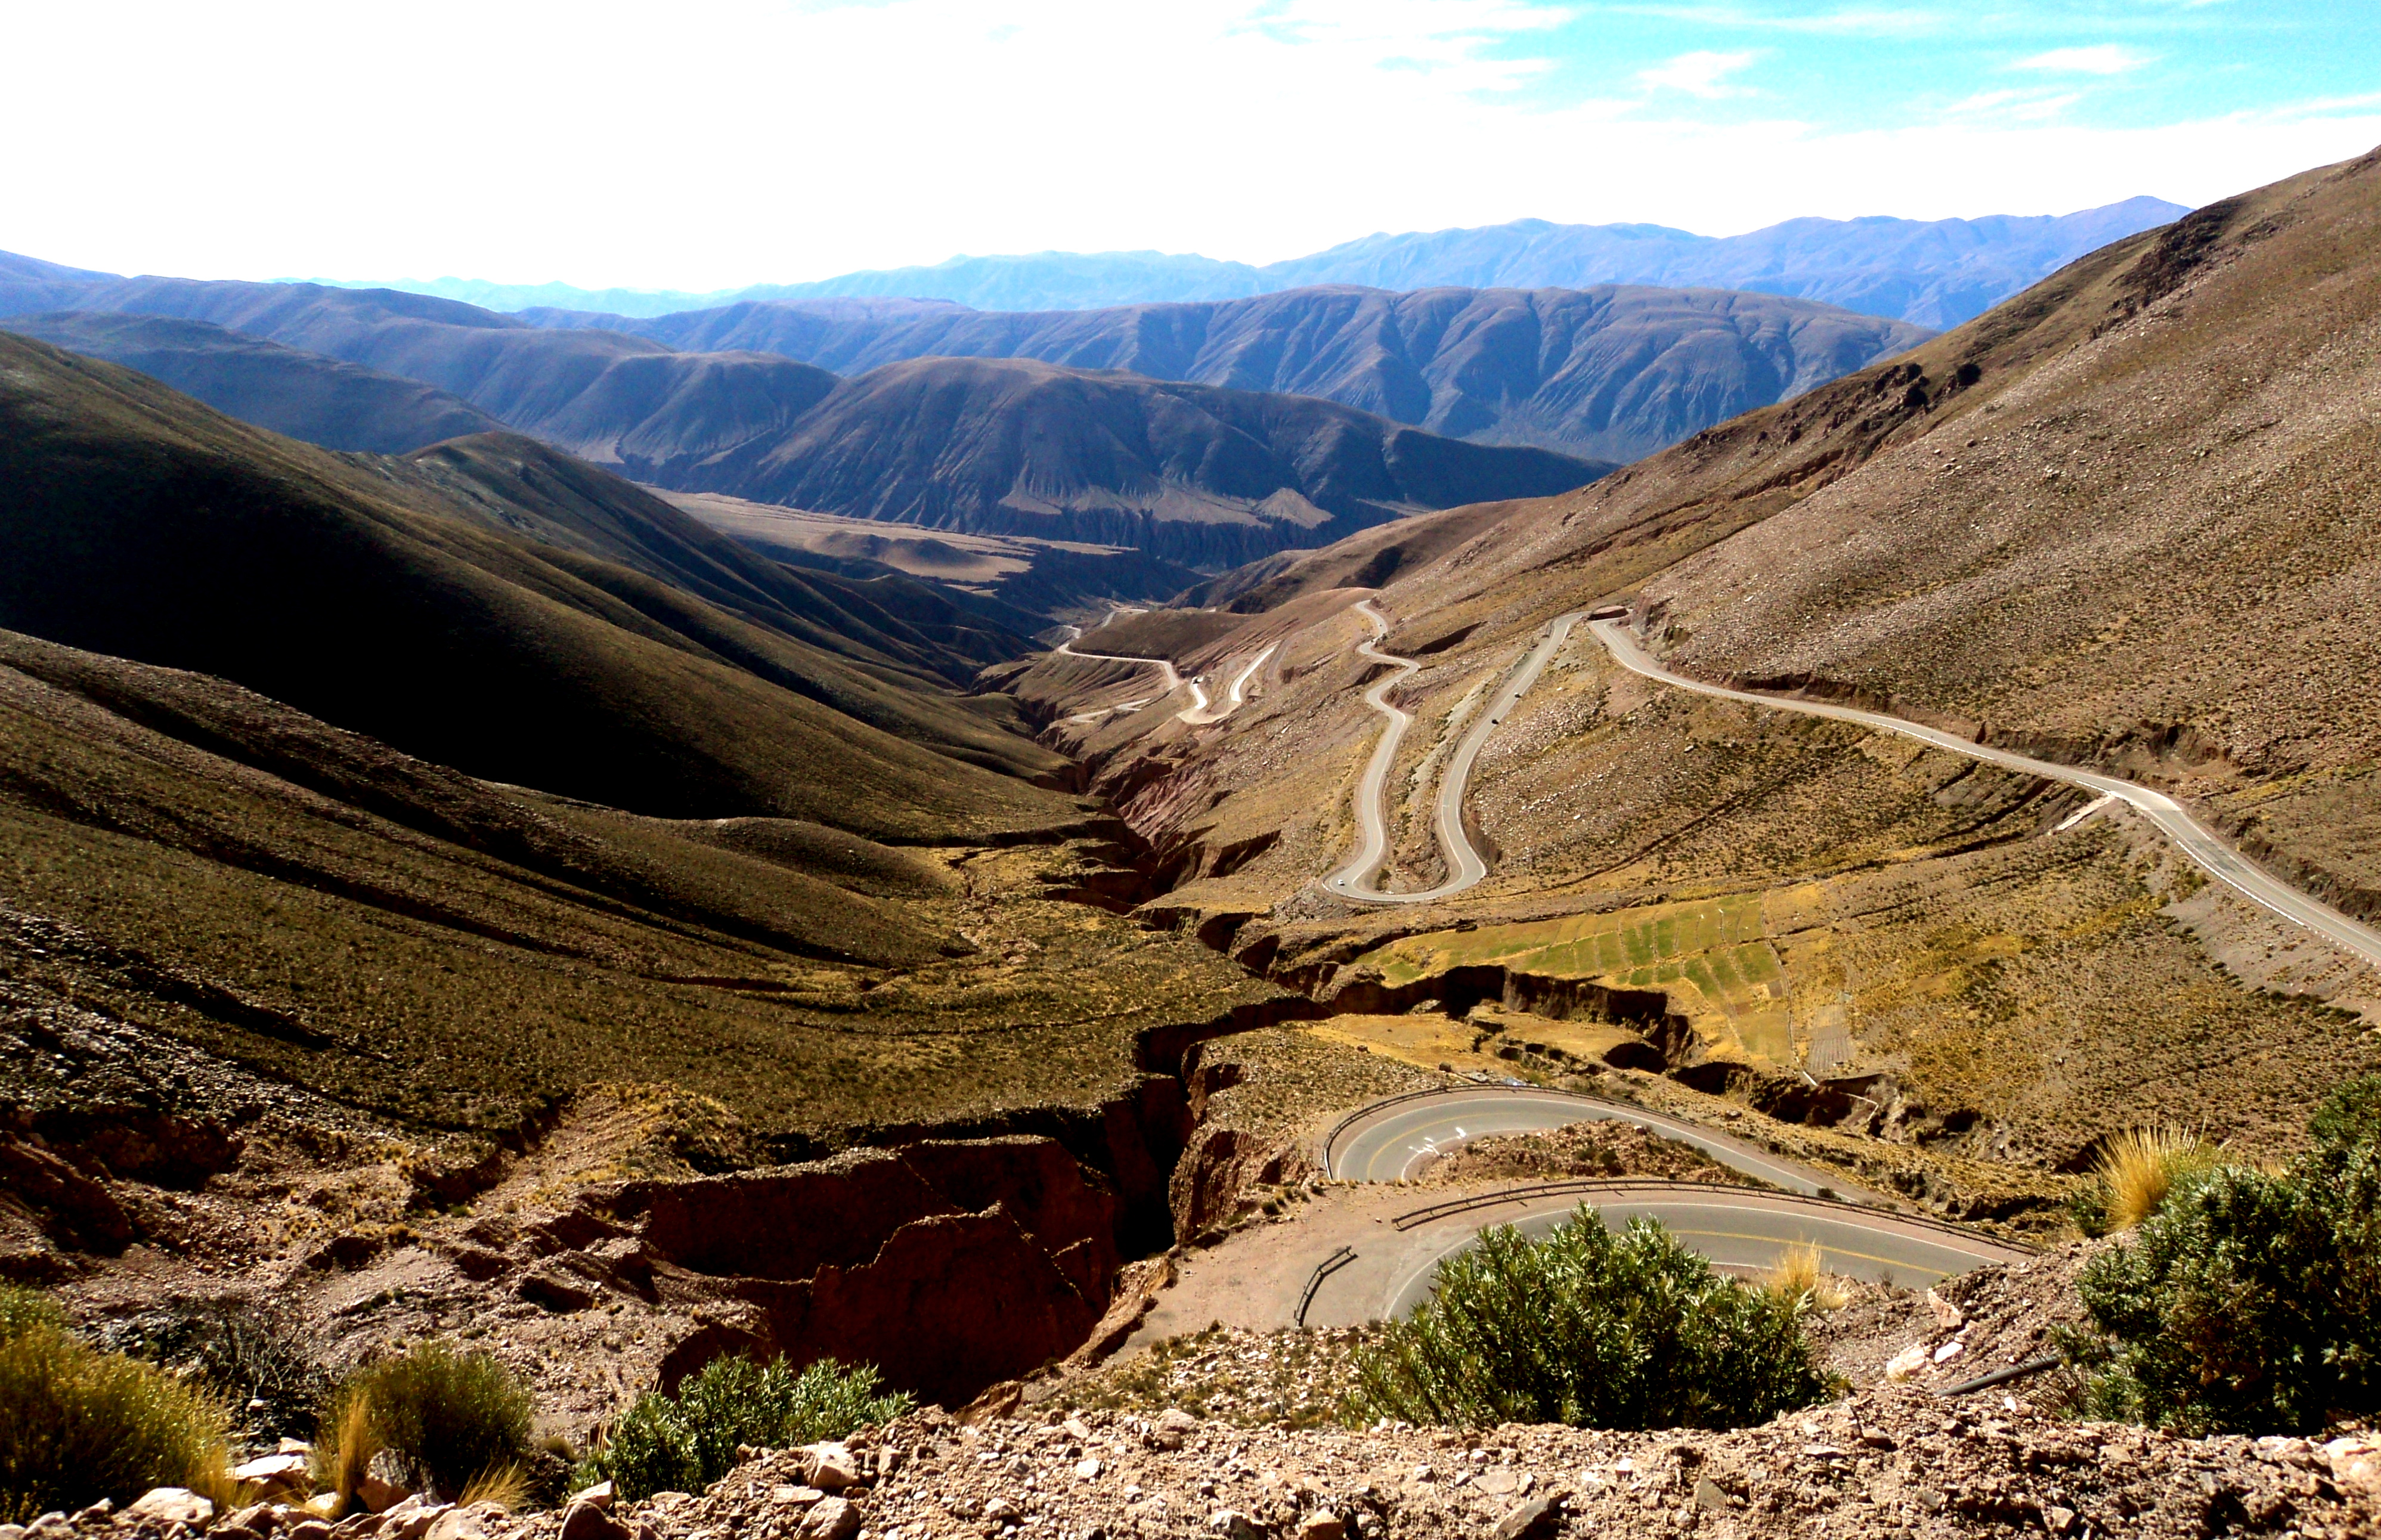 The Pre-Andes Mountains, Argentina